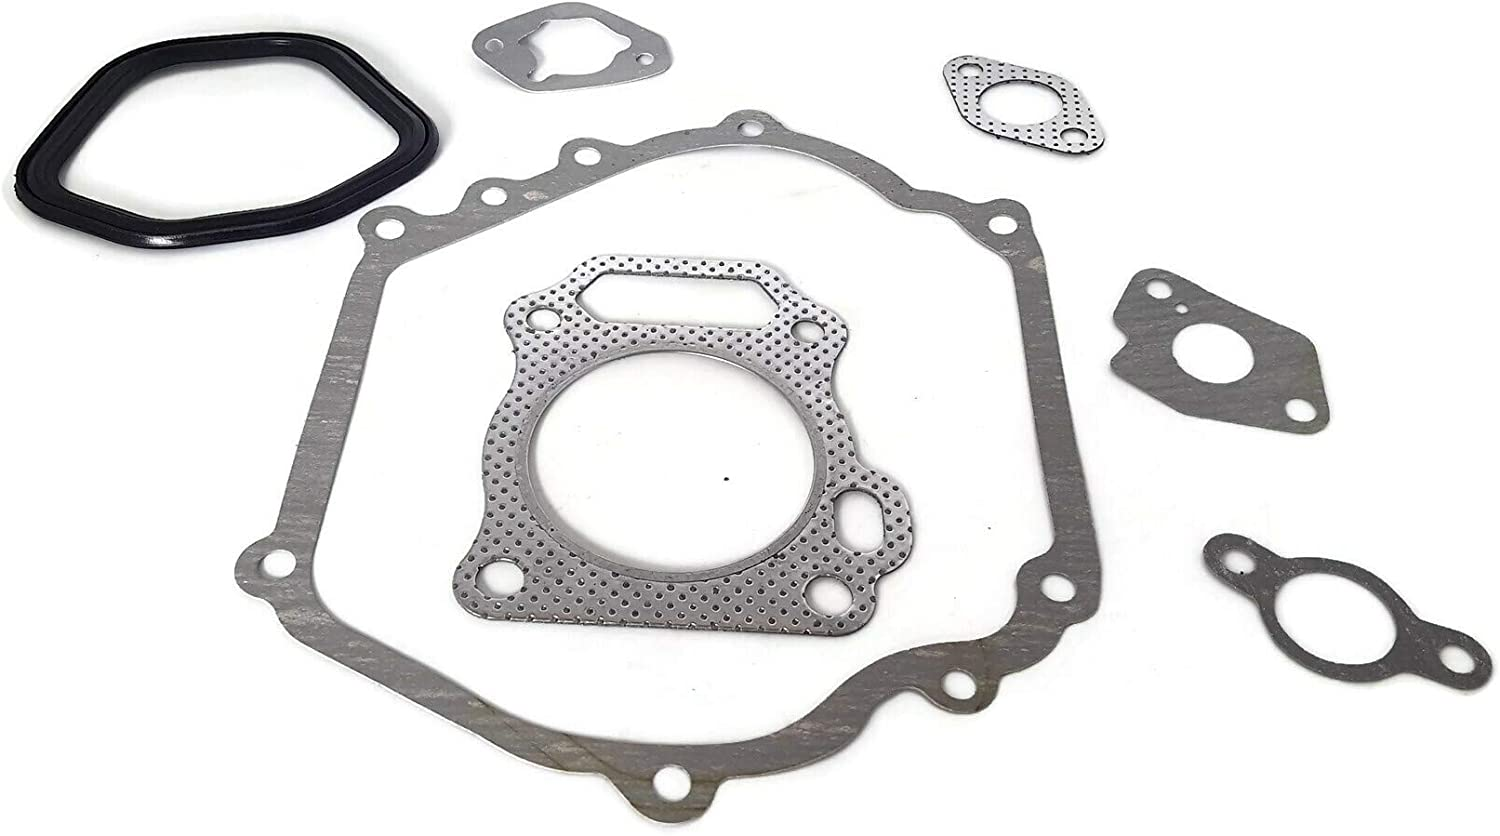 ITACO Overhaul Gasket Set Kit w Base Head Gasket for Honda GX270 GX 270 06111-ZH9-405 Motor Lawnmower Trimmer Engine